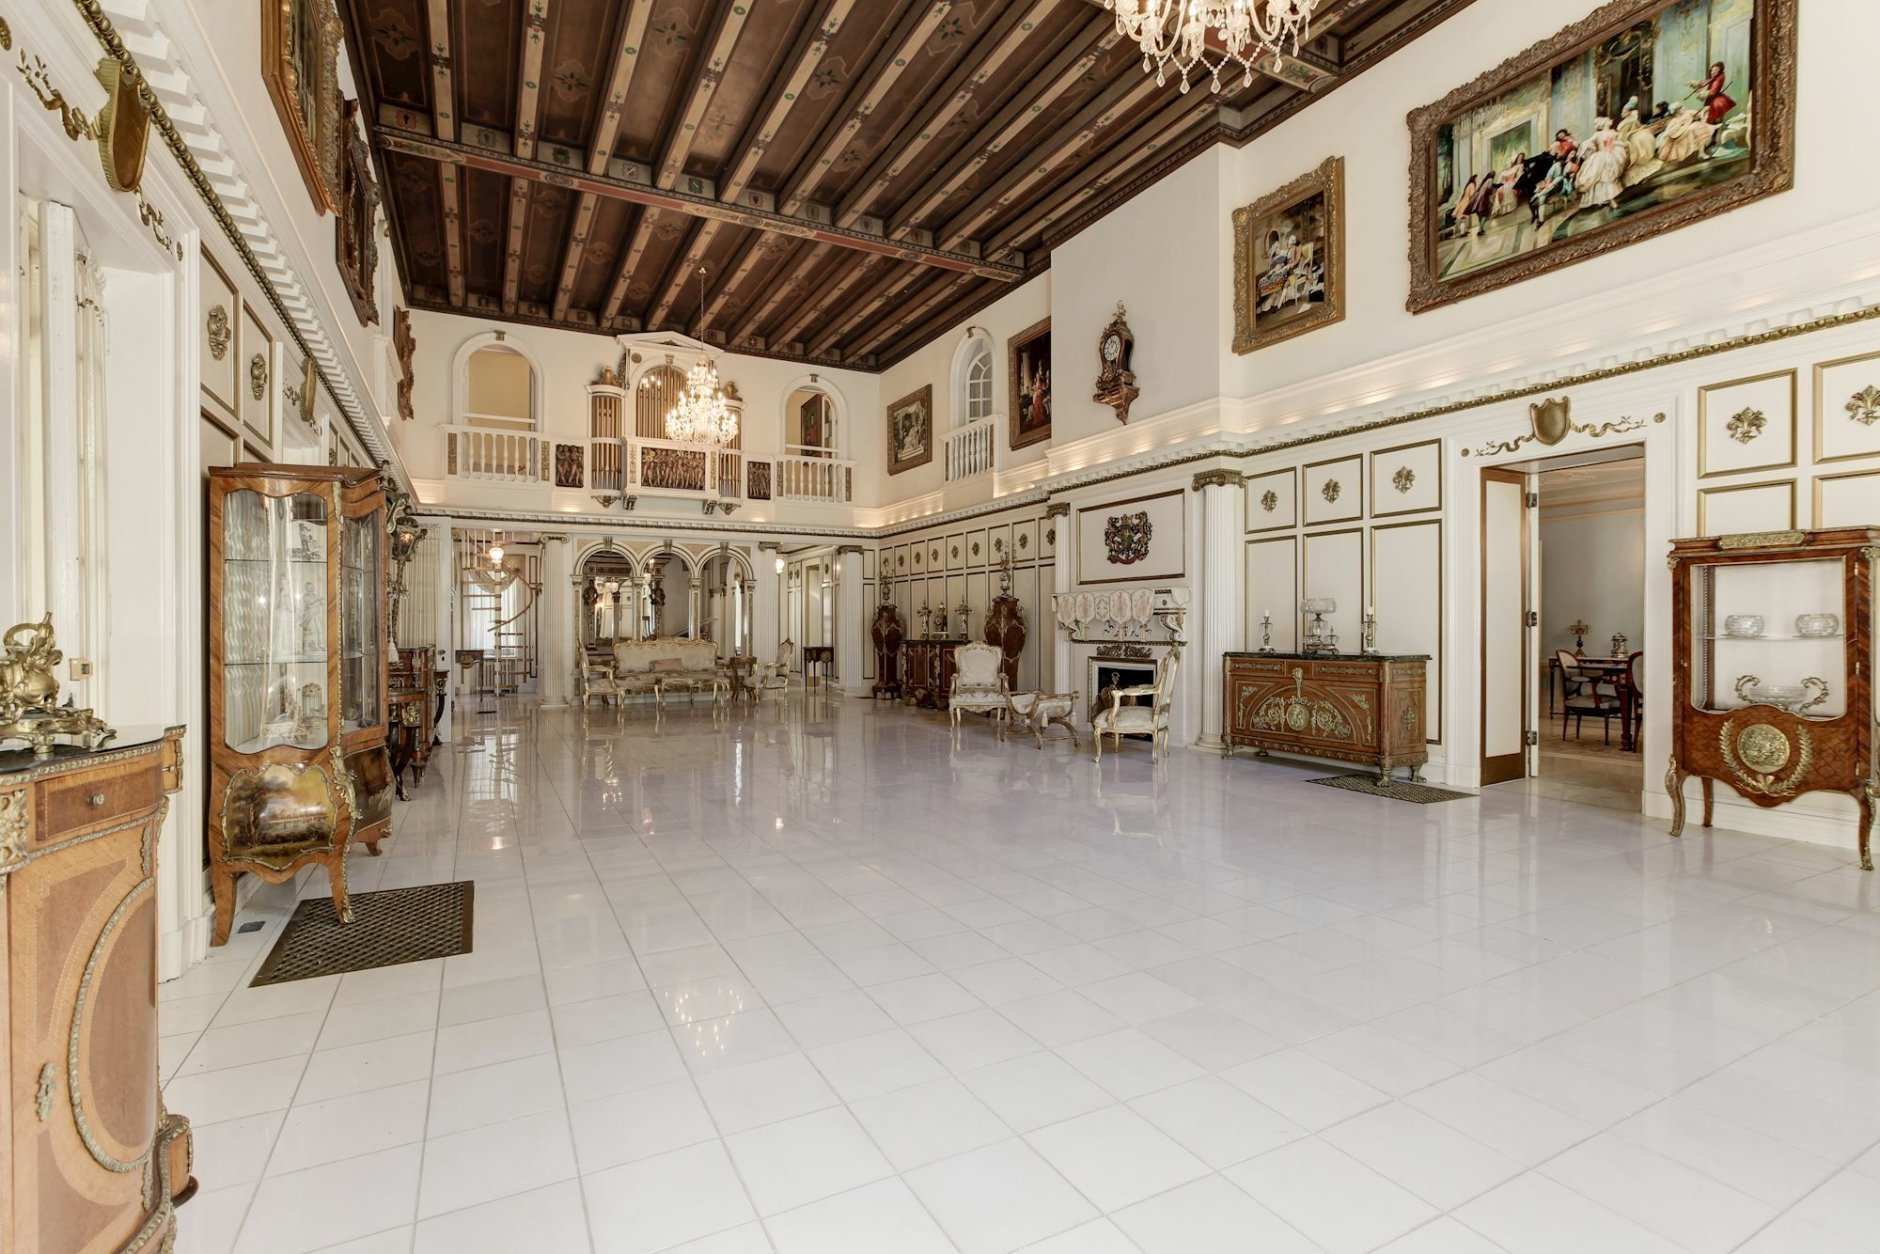 The site has played host to lavish ballroom parties and quieter moments enjoyed privately by some of the world's most powerful people. (Courtesy Long & Foster)